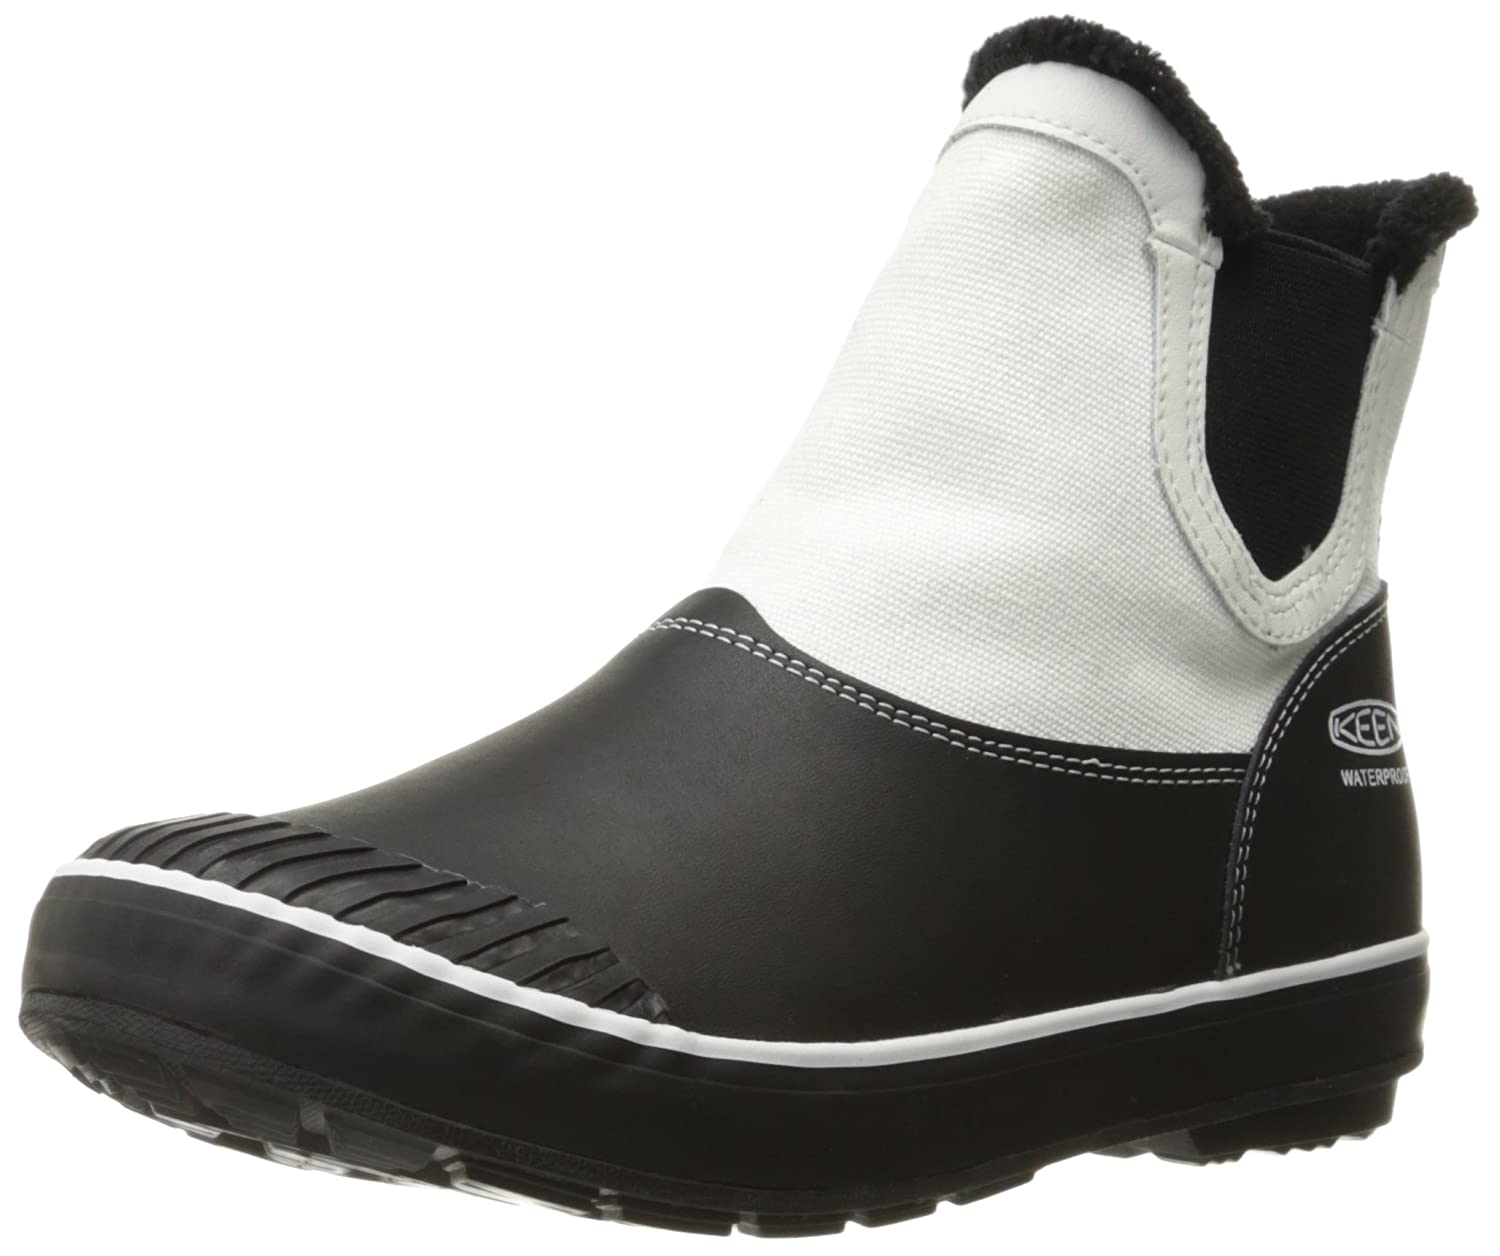 KEEN Women's Elsa Chelsea Waterproof Boot B019FC4JPK 6 B(M) US|Star White/Black